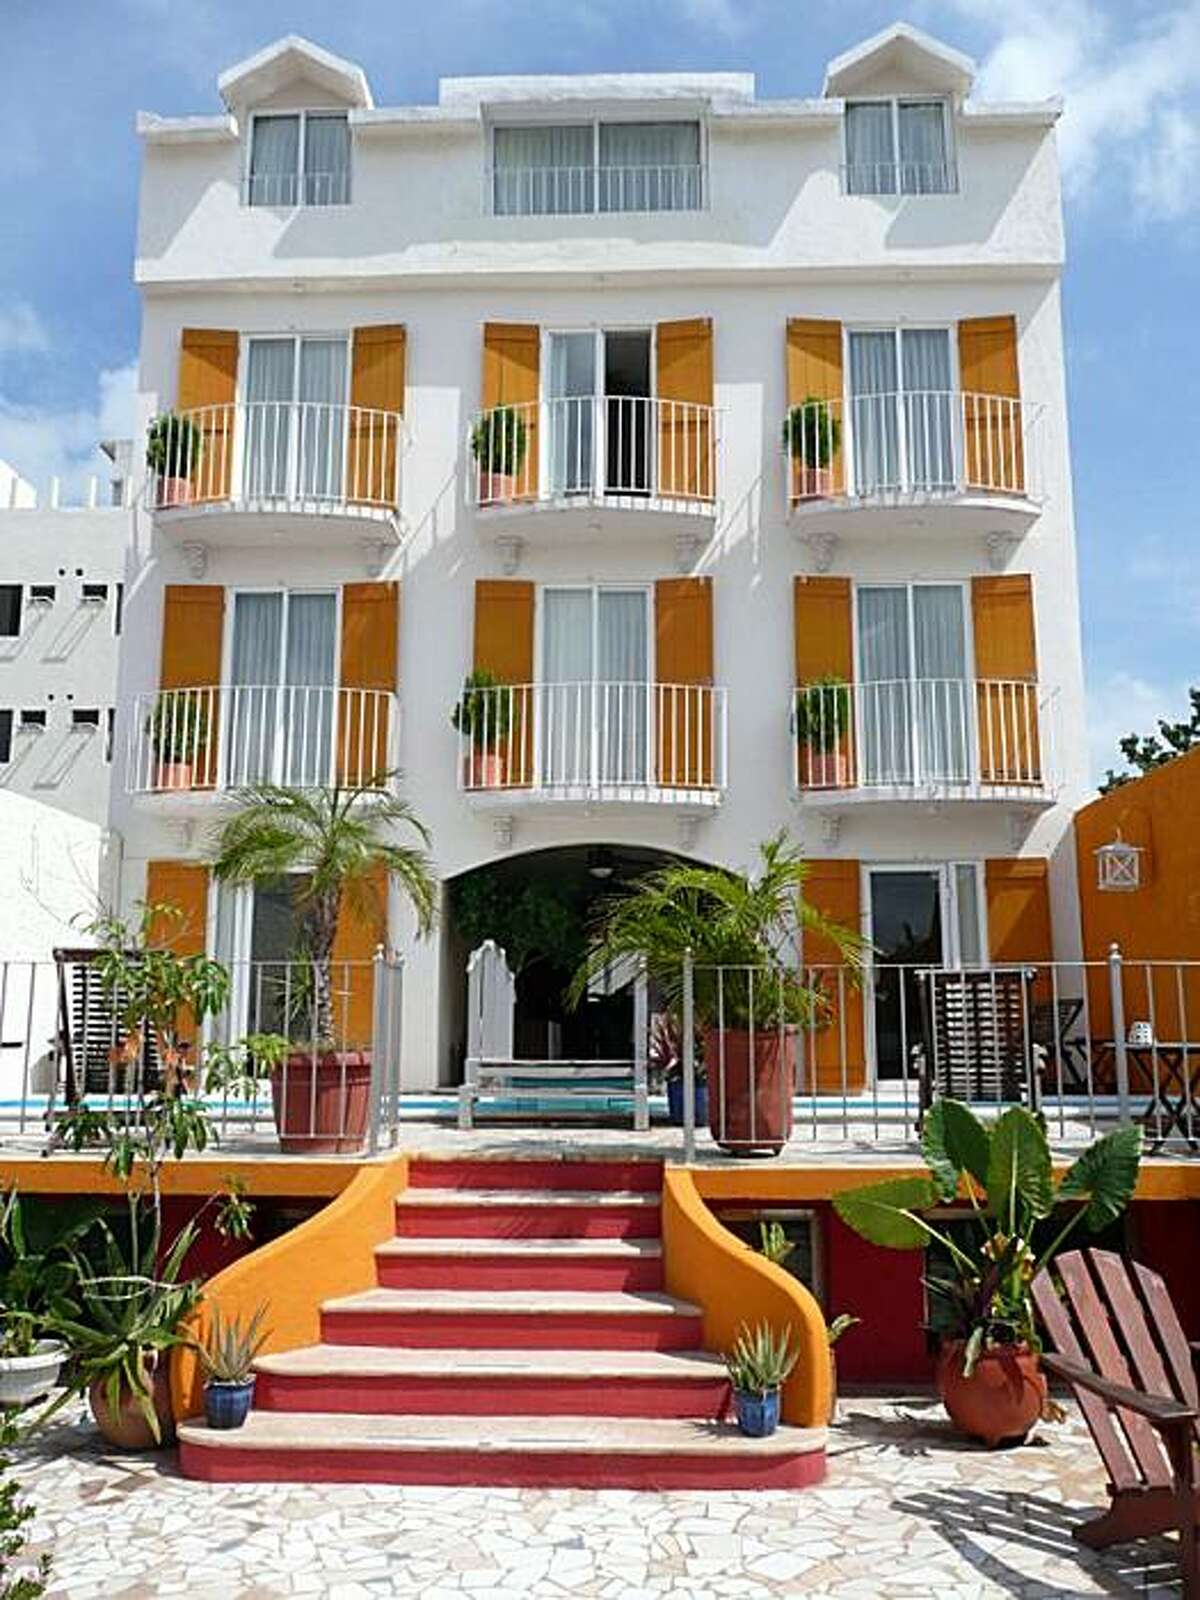 Hotel Sol y Luna: This pretty, vaguely Colonial, vaguely Victorian, and thoroughly contemporary boutique hotel stands at the corner of Parque Las Palapas, Cancun's de facto central square. A tapas and wine bar occupies the first floor.